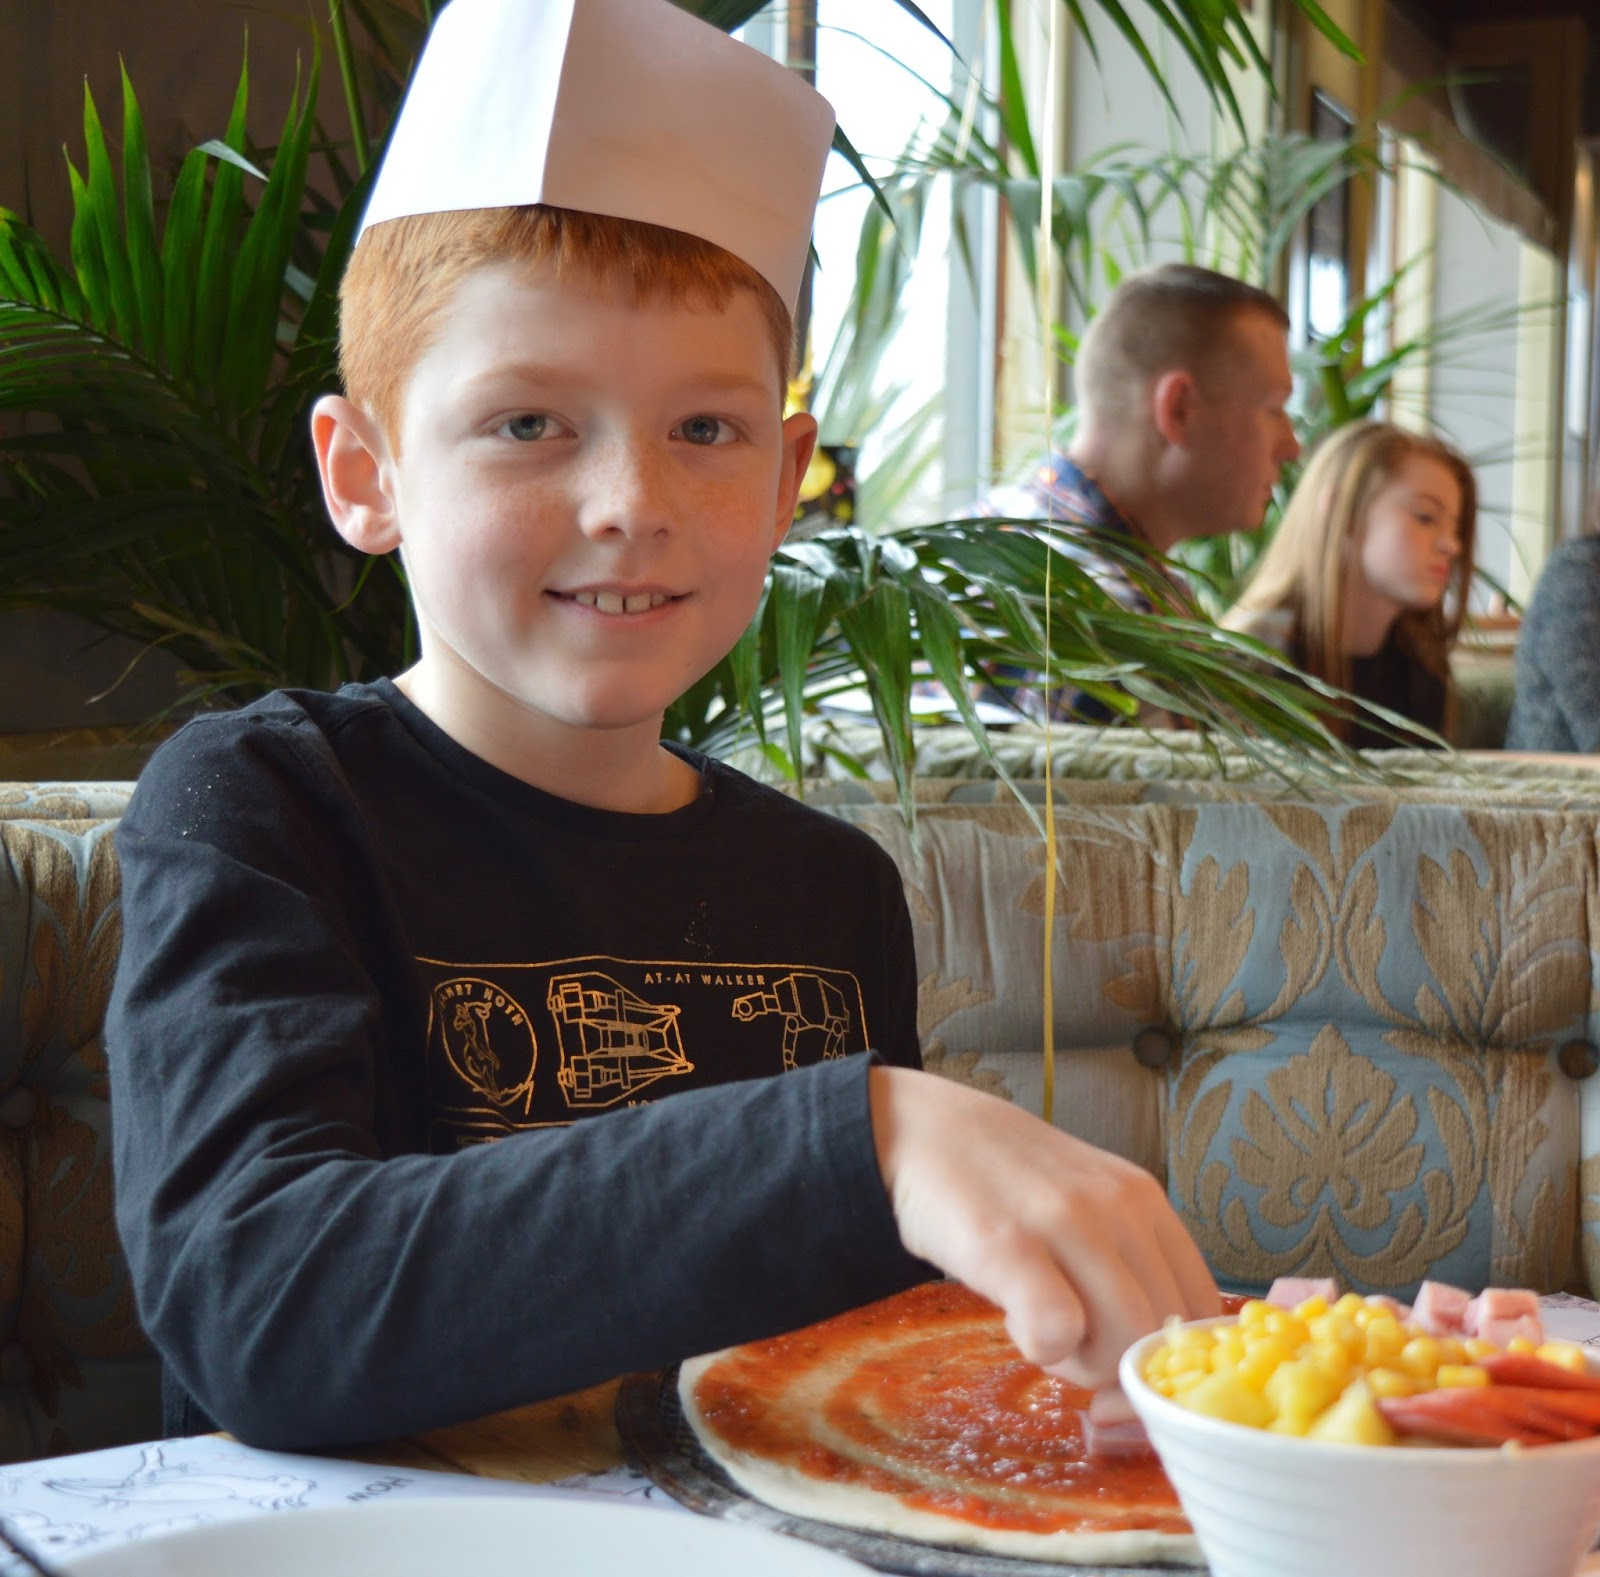 Kids make your own pizza at Liberty Brown, Sunderland